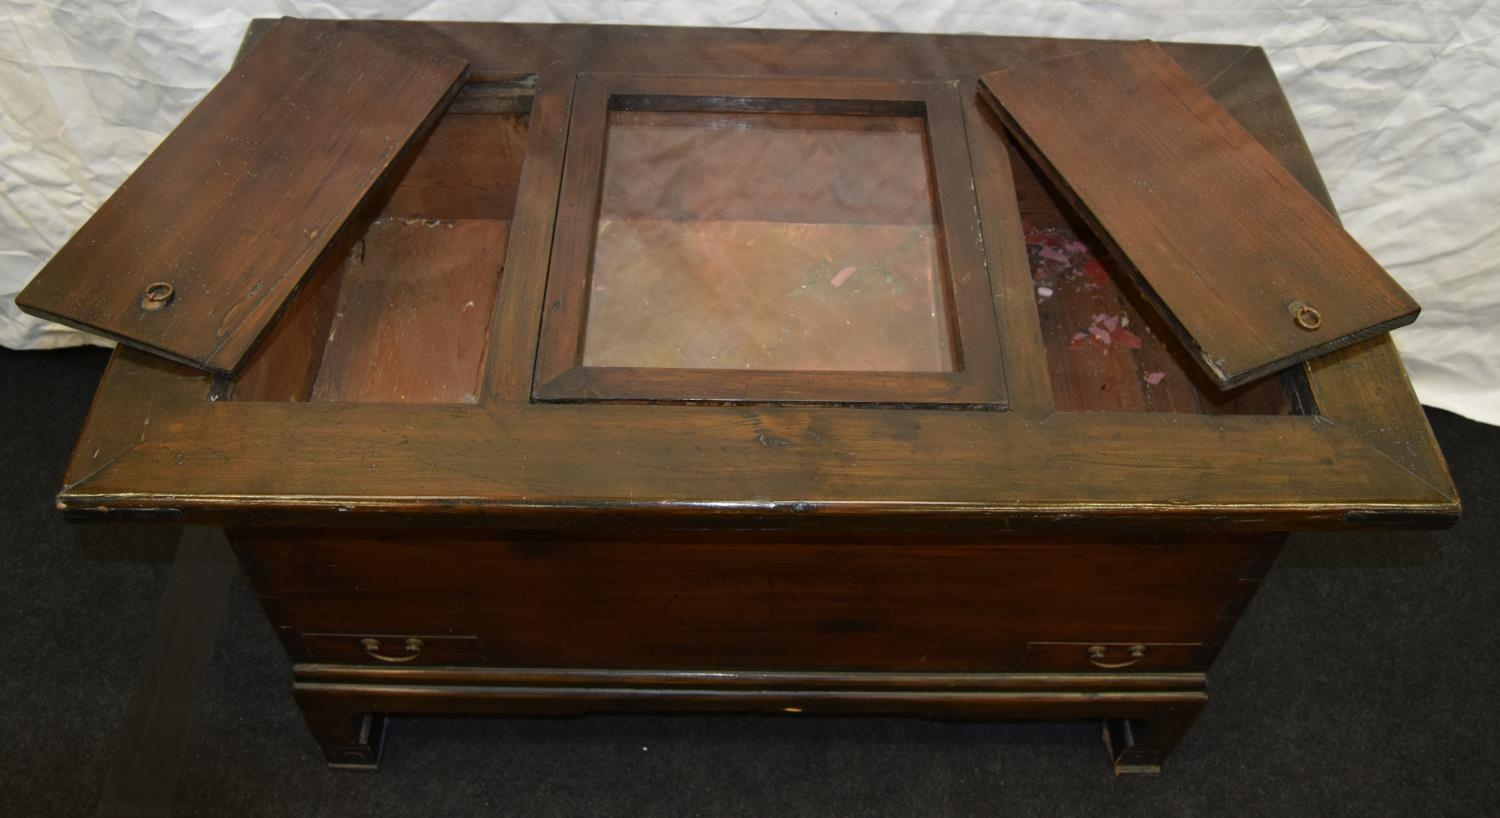 Chinese dark wood hot food serving cabinet with glazed copper lined centre well 98cm wide x 55cm - Image 2 of 3